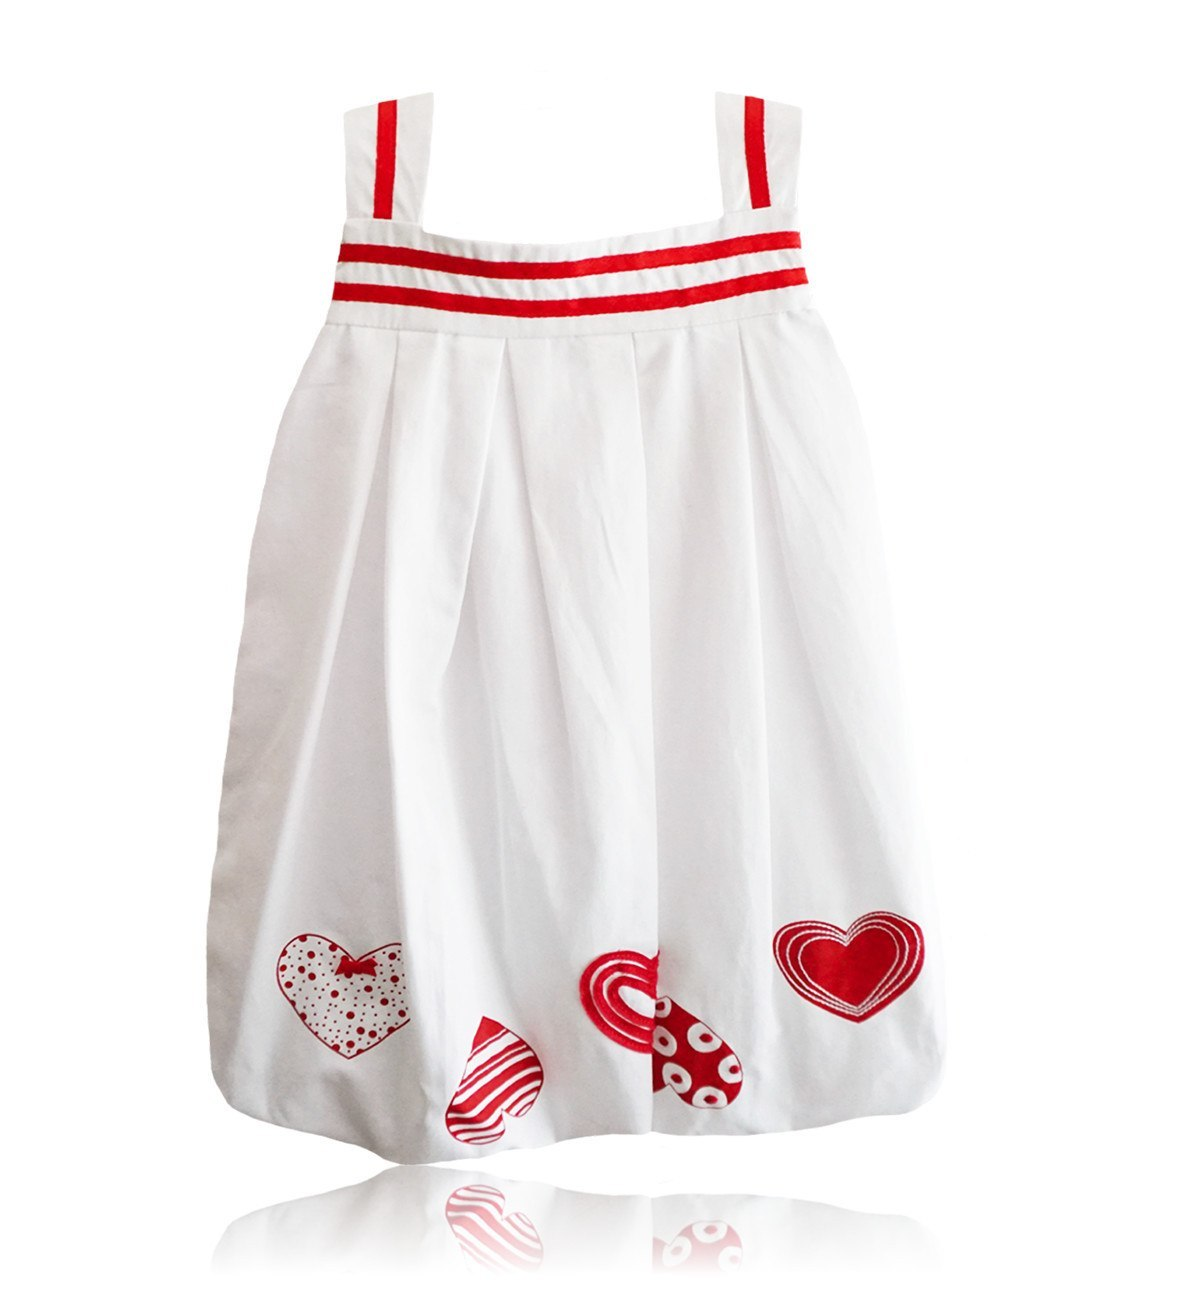 Spanish baby clothes | baby Dress | White and red dress |babymaC  - 1